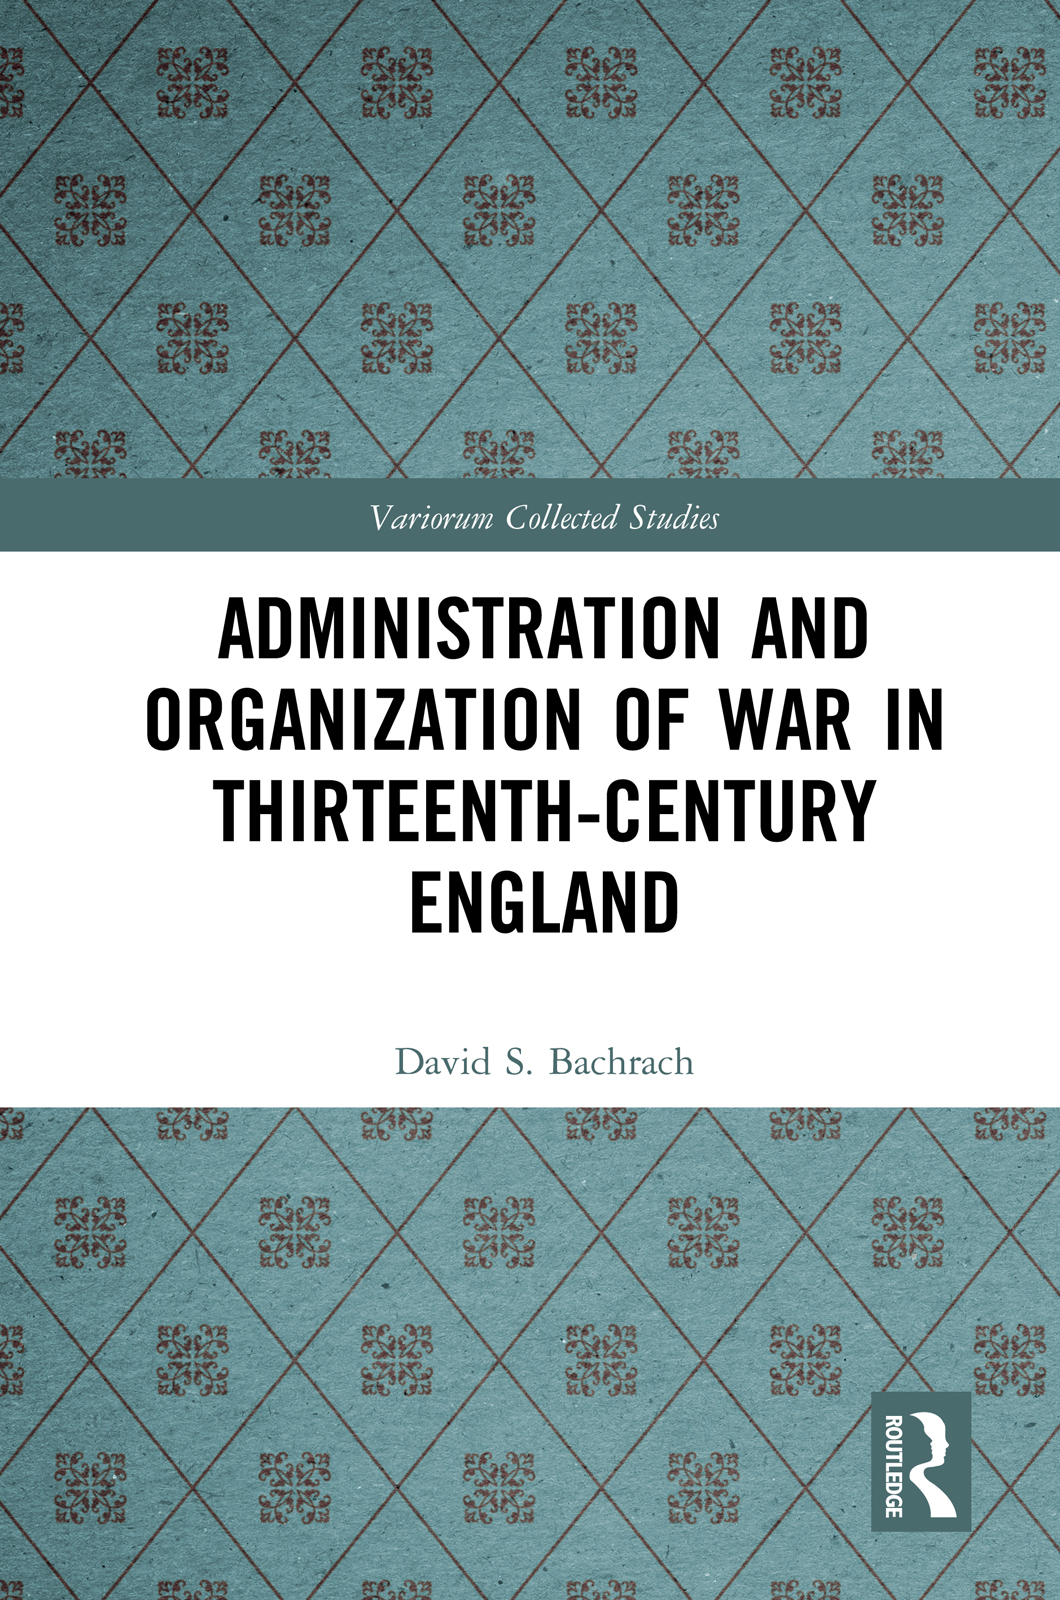 Prices, price controls, and market forces in England under Edward I, c. 1294–1307                            1